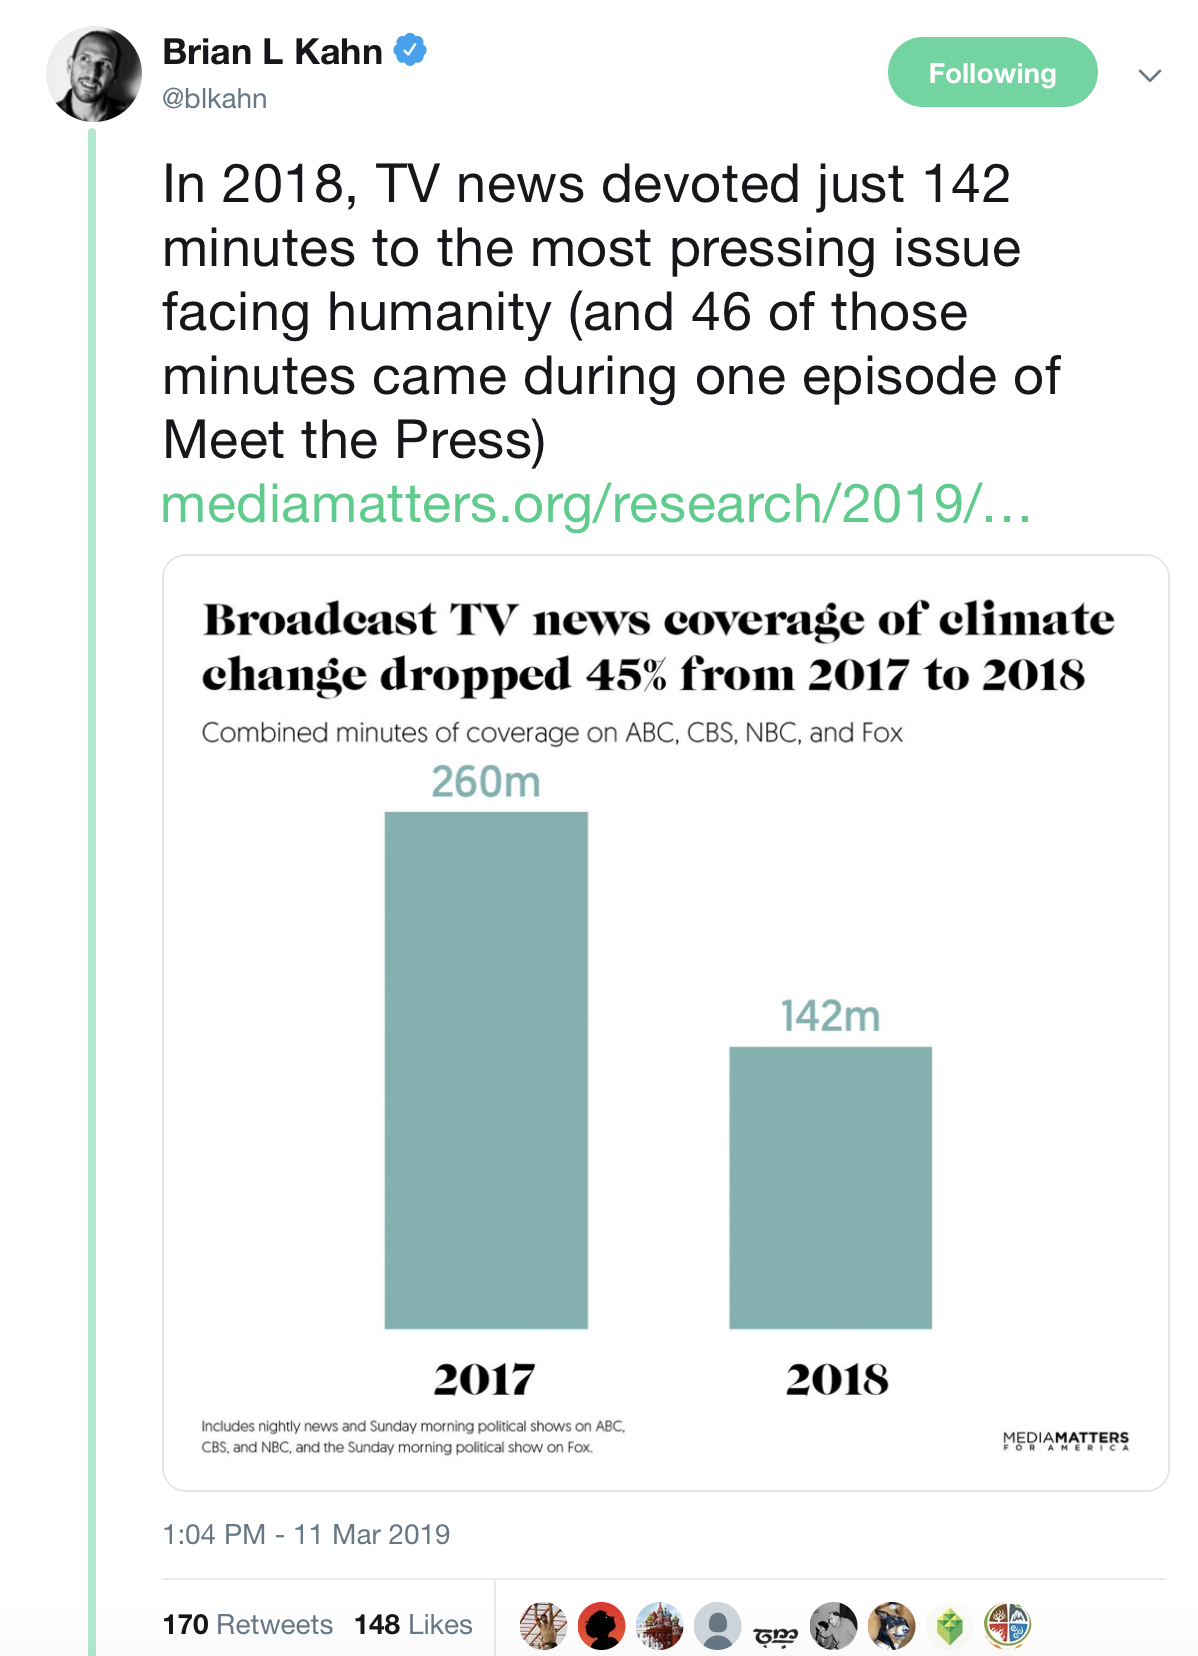 Ask your favorite news outlet to devote more coverage to climate change. -